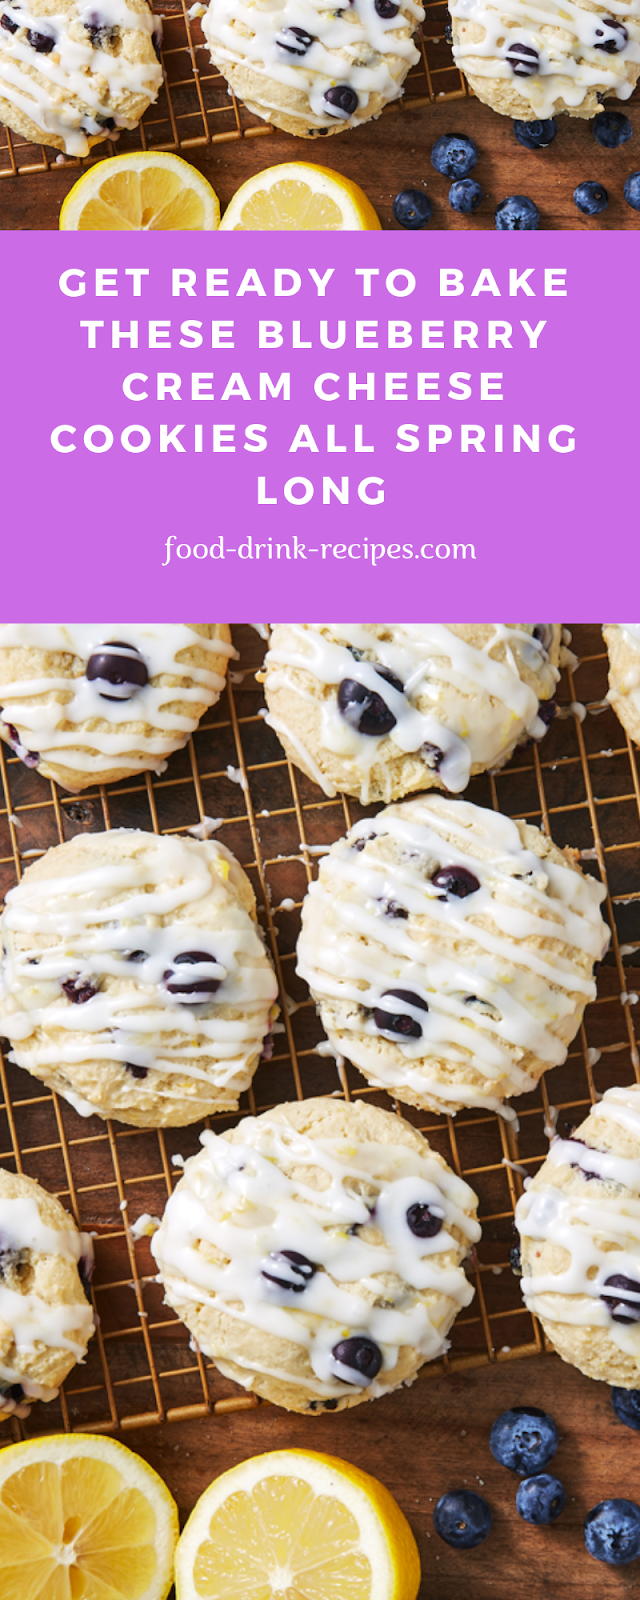 Get Ready To Bake These Blueberry Cream Cheese Cookies All Spring Long - food-drink-recipes.com